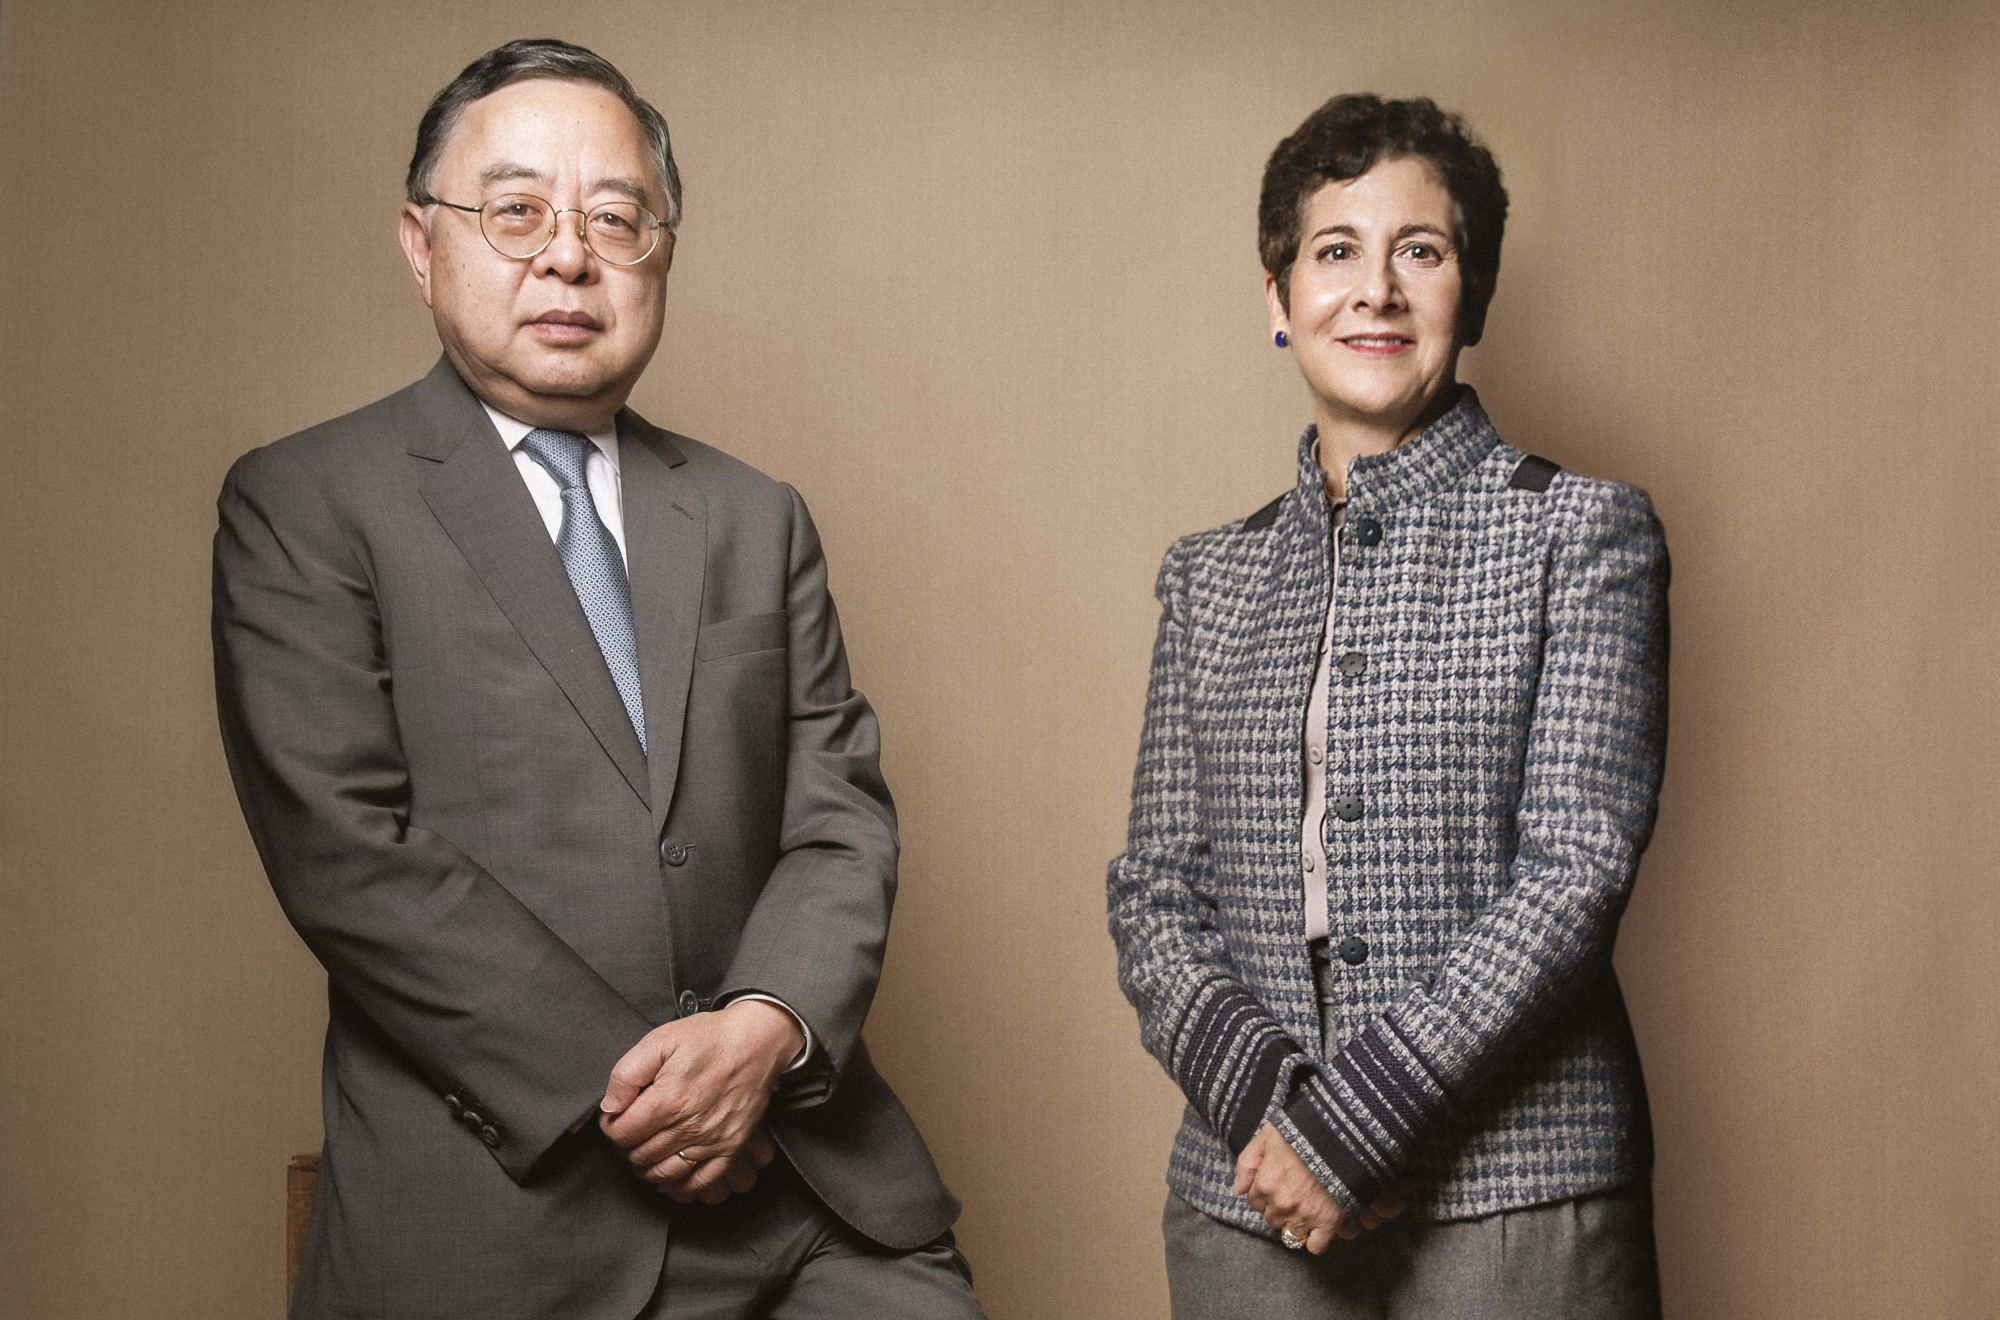 How Ronnie Chan And Ruth Shapiro Are Promoting Excellence In Asian Philanthropy